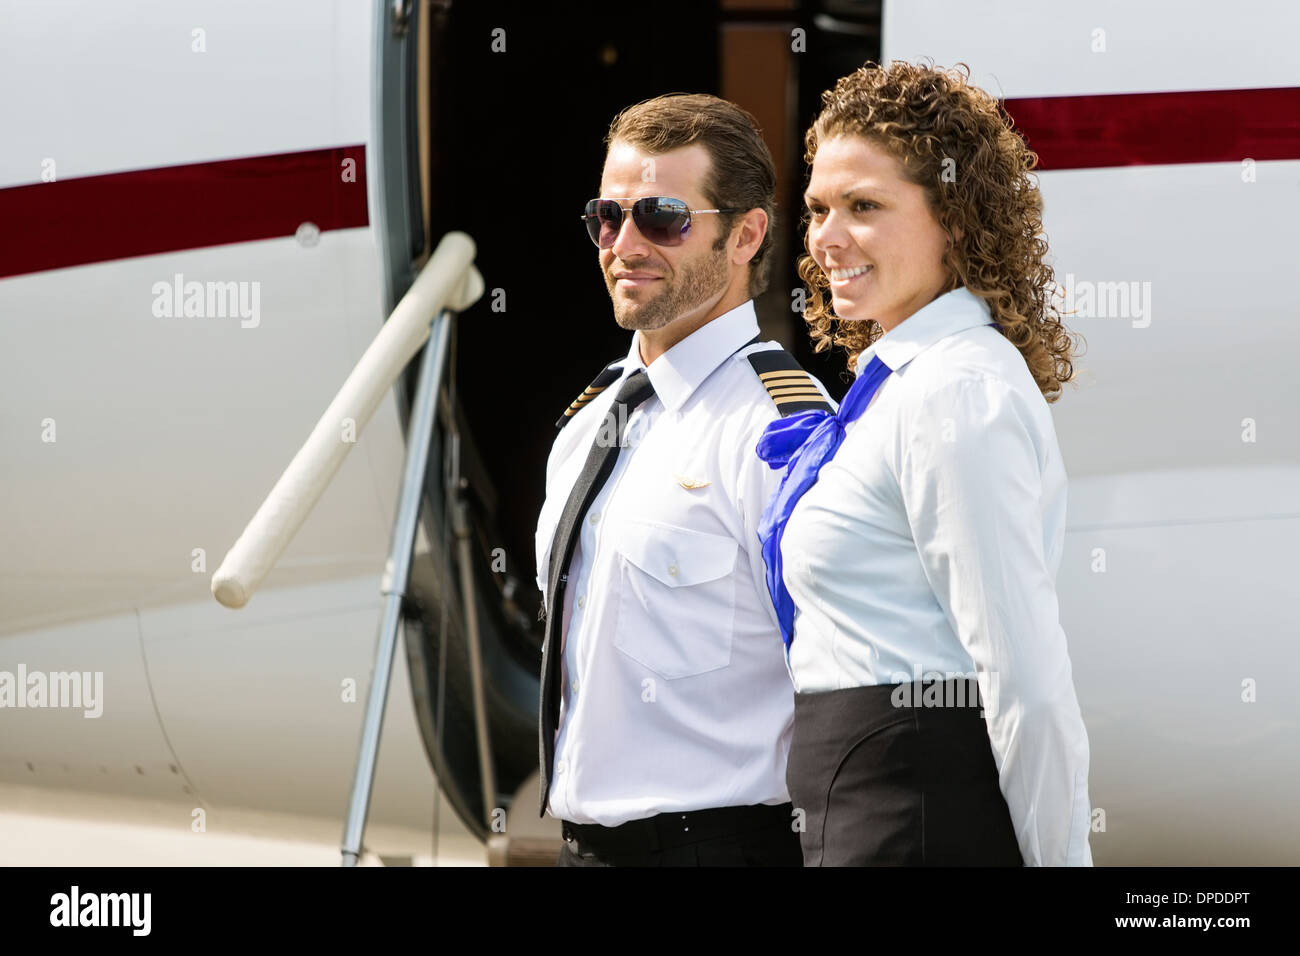 Airhostess And Pilot Looking Away Against Private Jet - Stock Image